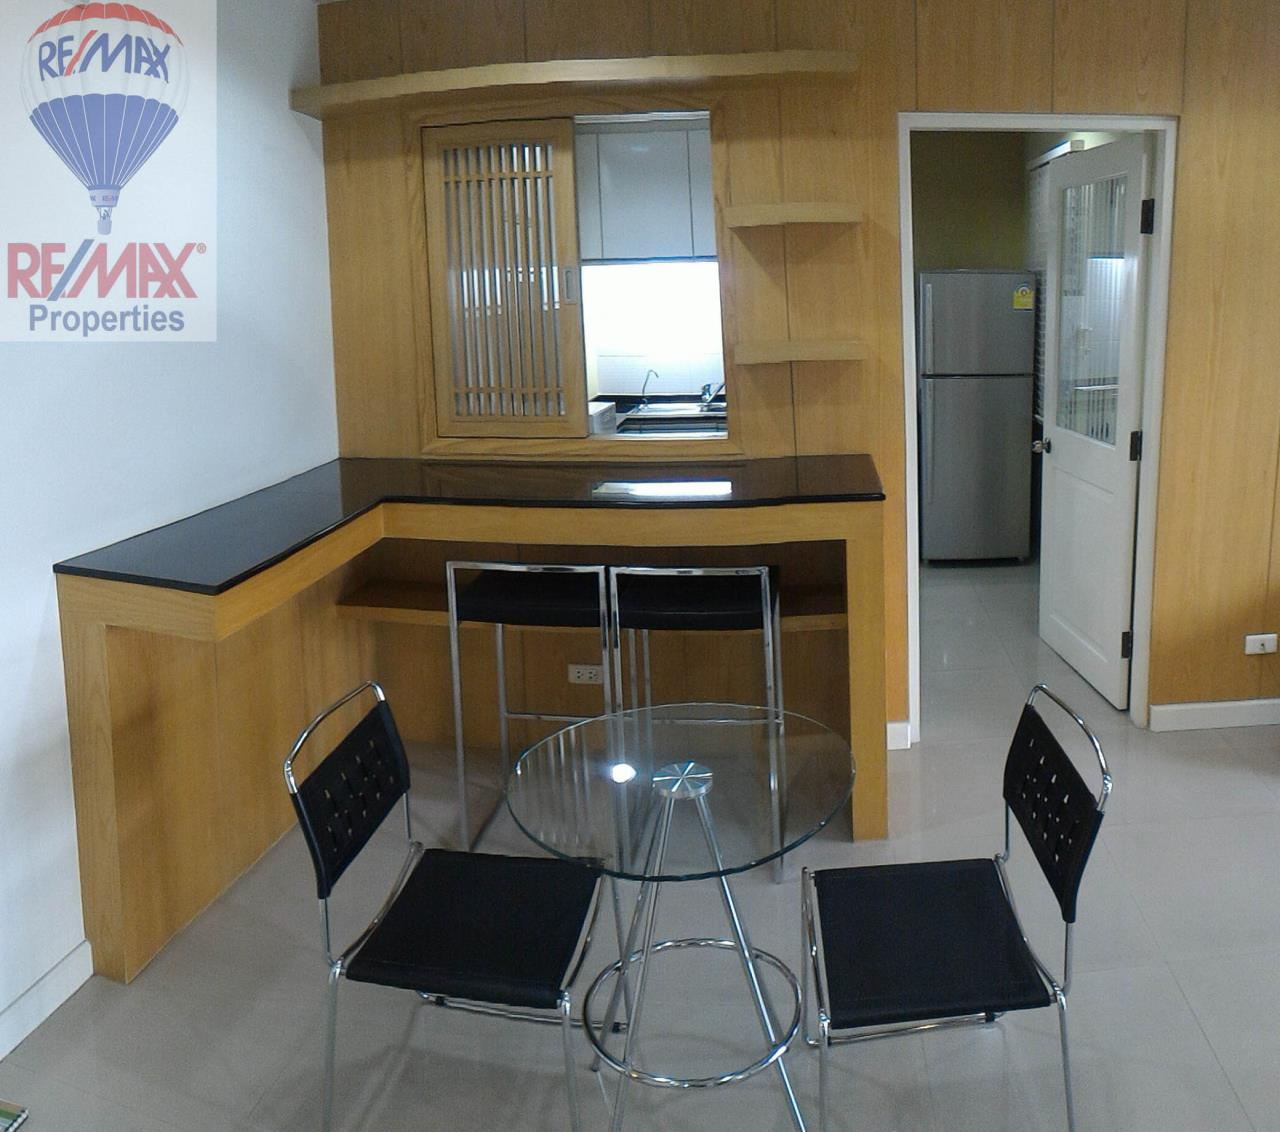 RE/MAX Properties Agency's Serene Place 24 - 1Bedroom Unit for Sale/Rent 4